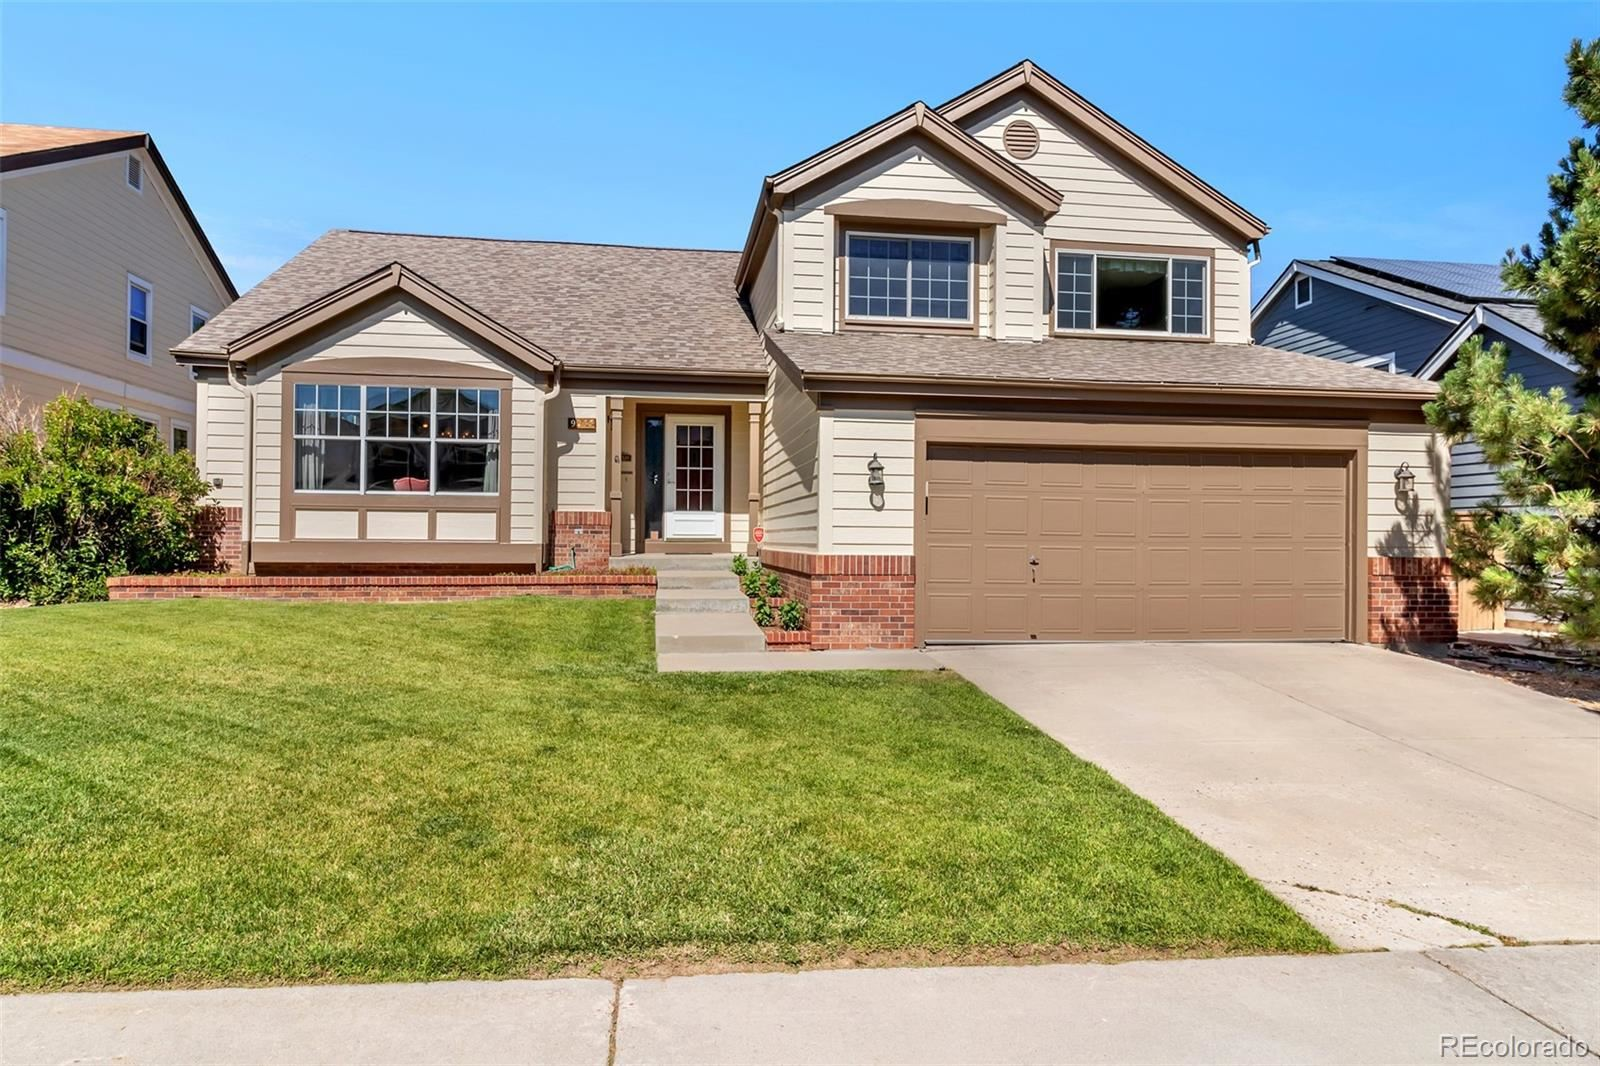 9235 Madras Court, Highlands Ranch, CO 80130 - #: 5540930